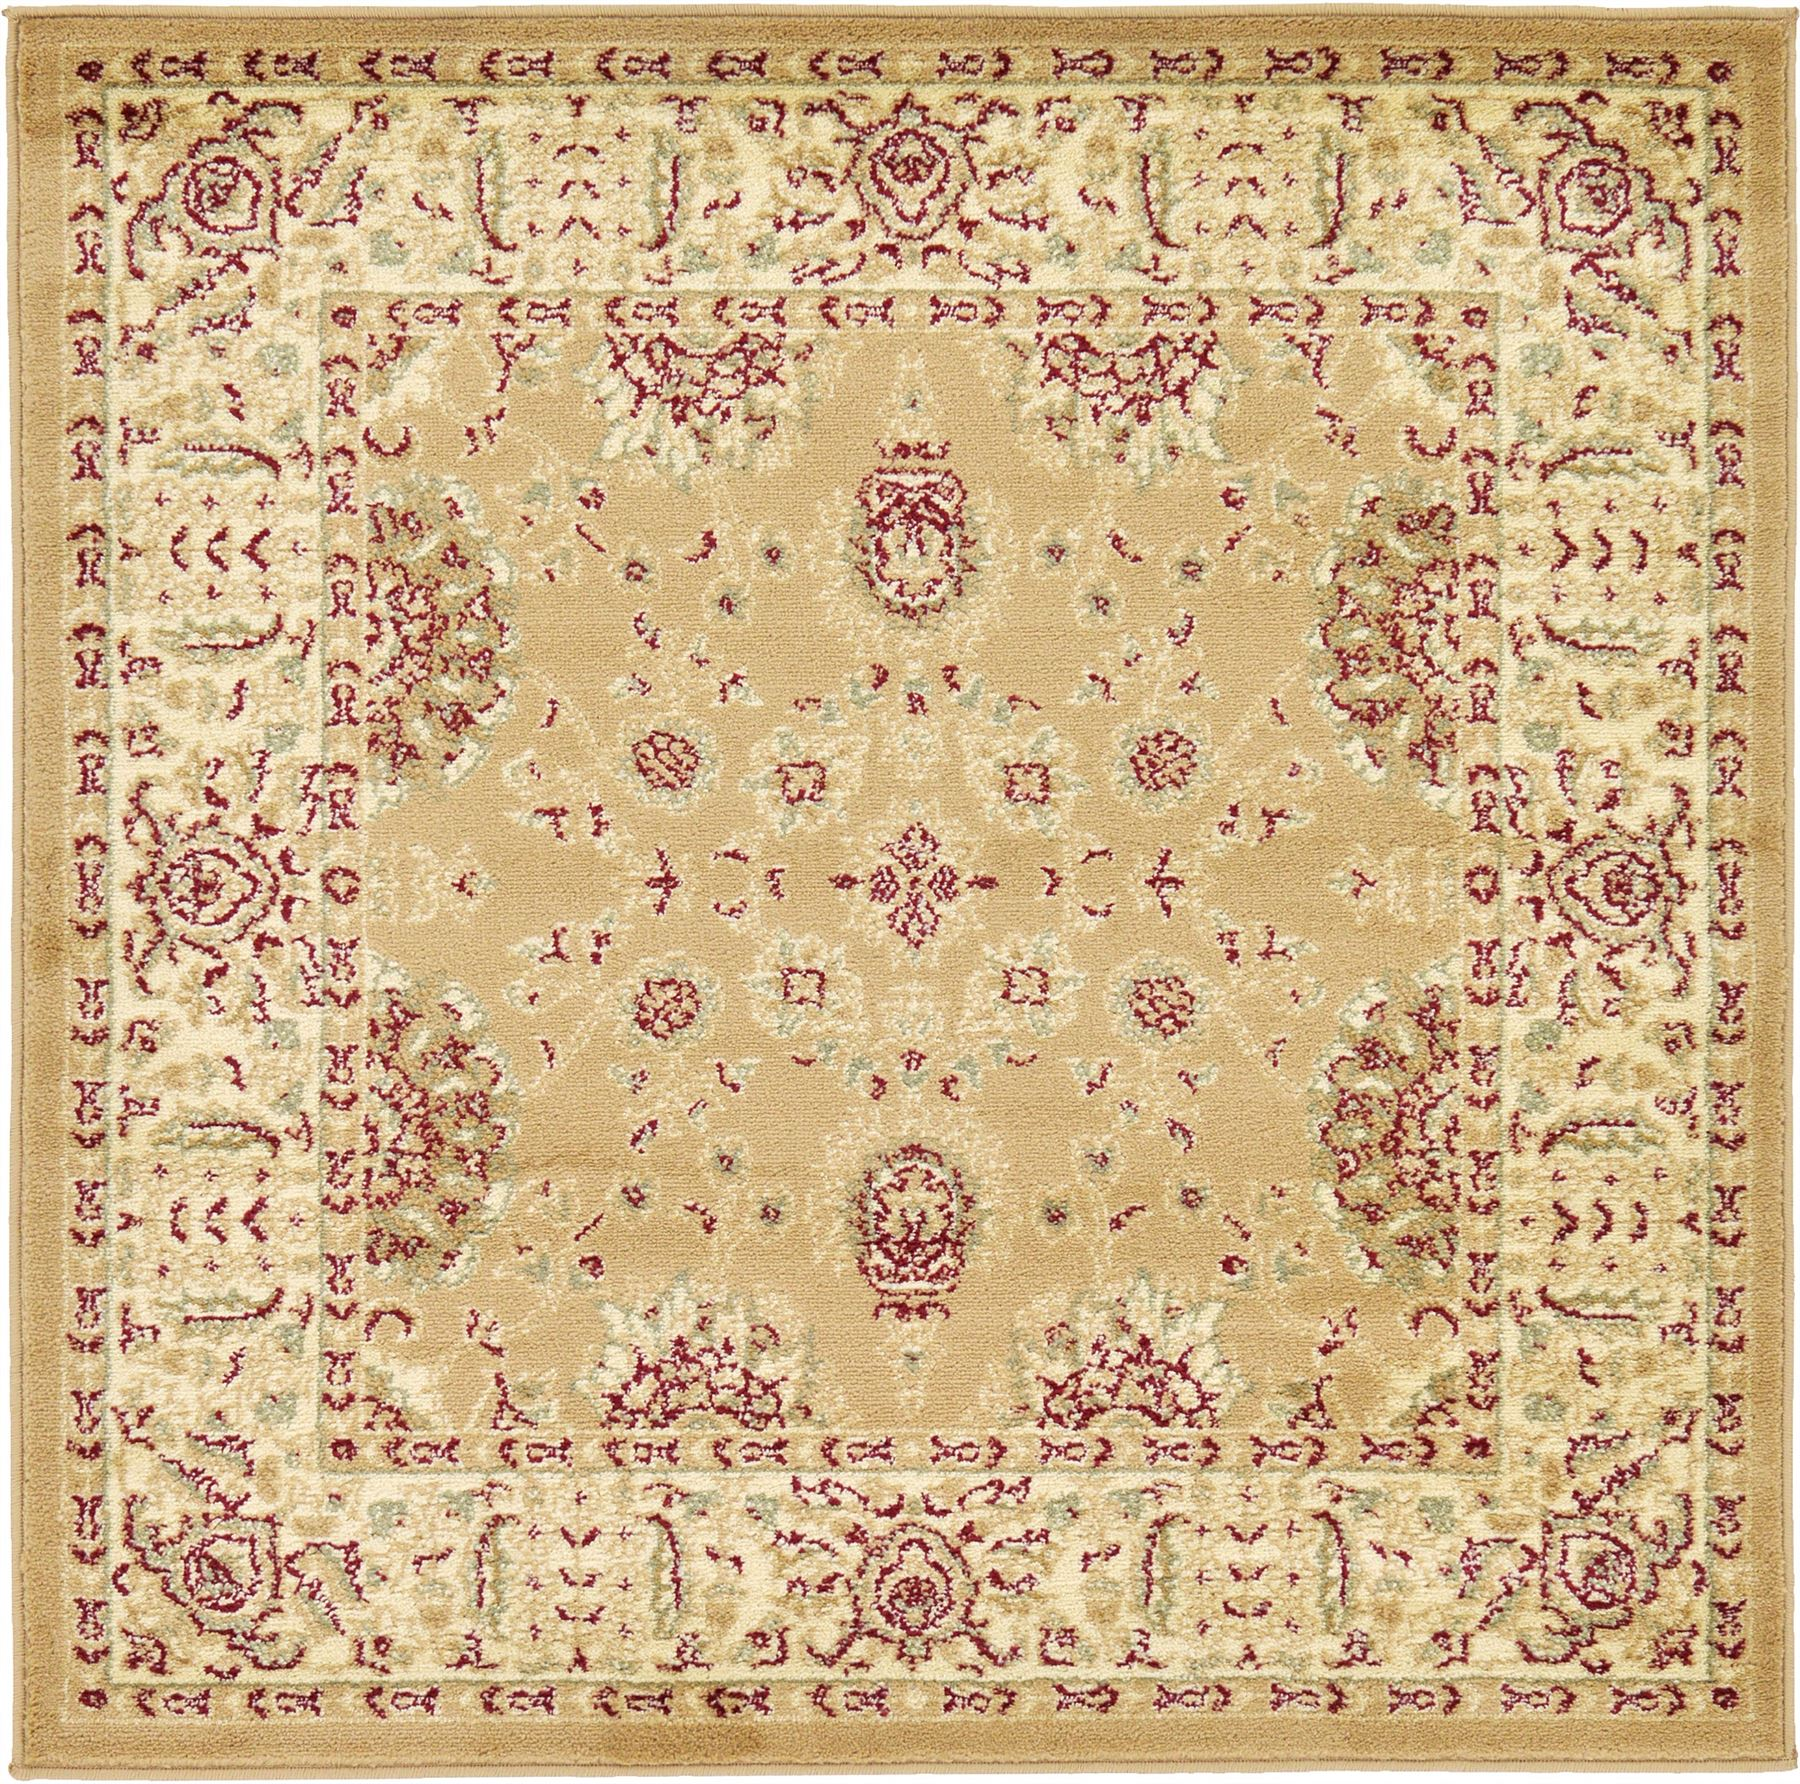 Oriental Rugs Out Of Style: A2Z Rug Traditional Oriental Area Rug Persian Style Carpet